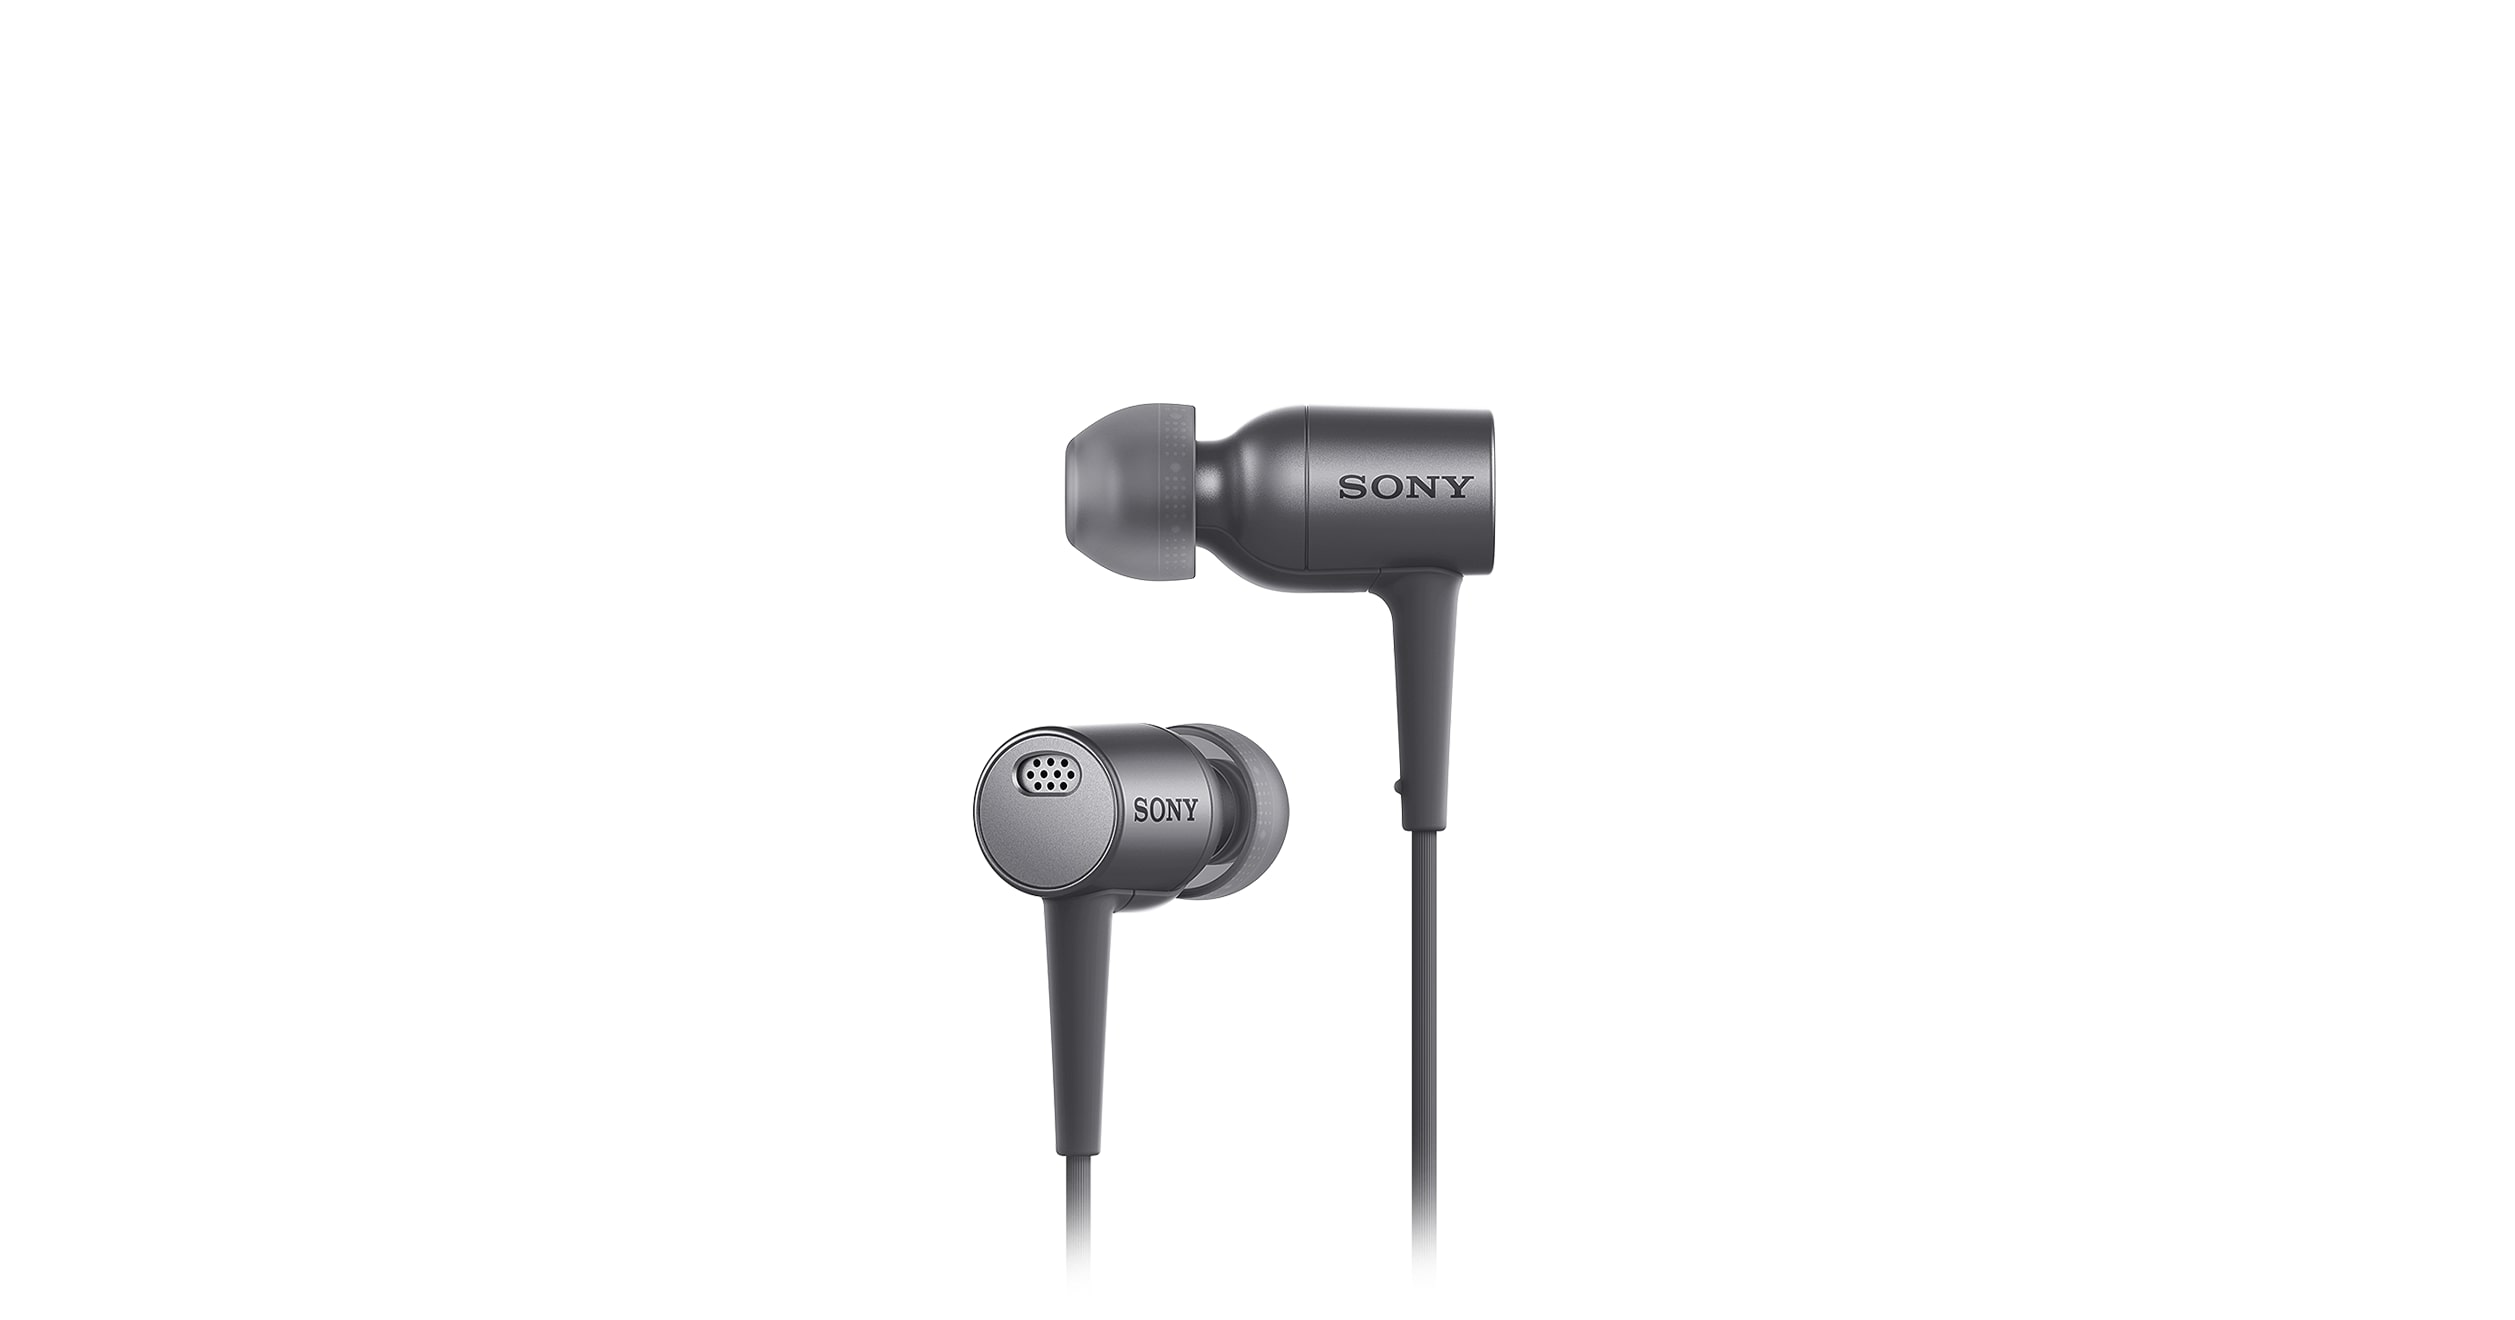 In Ear Noise Cancelling Headphones With Mic Mdr Ex750na Sony Headphone Mdr100abn Bluetooth Asia Pacific